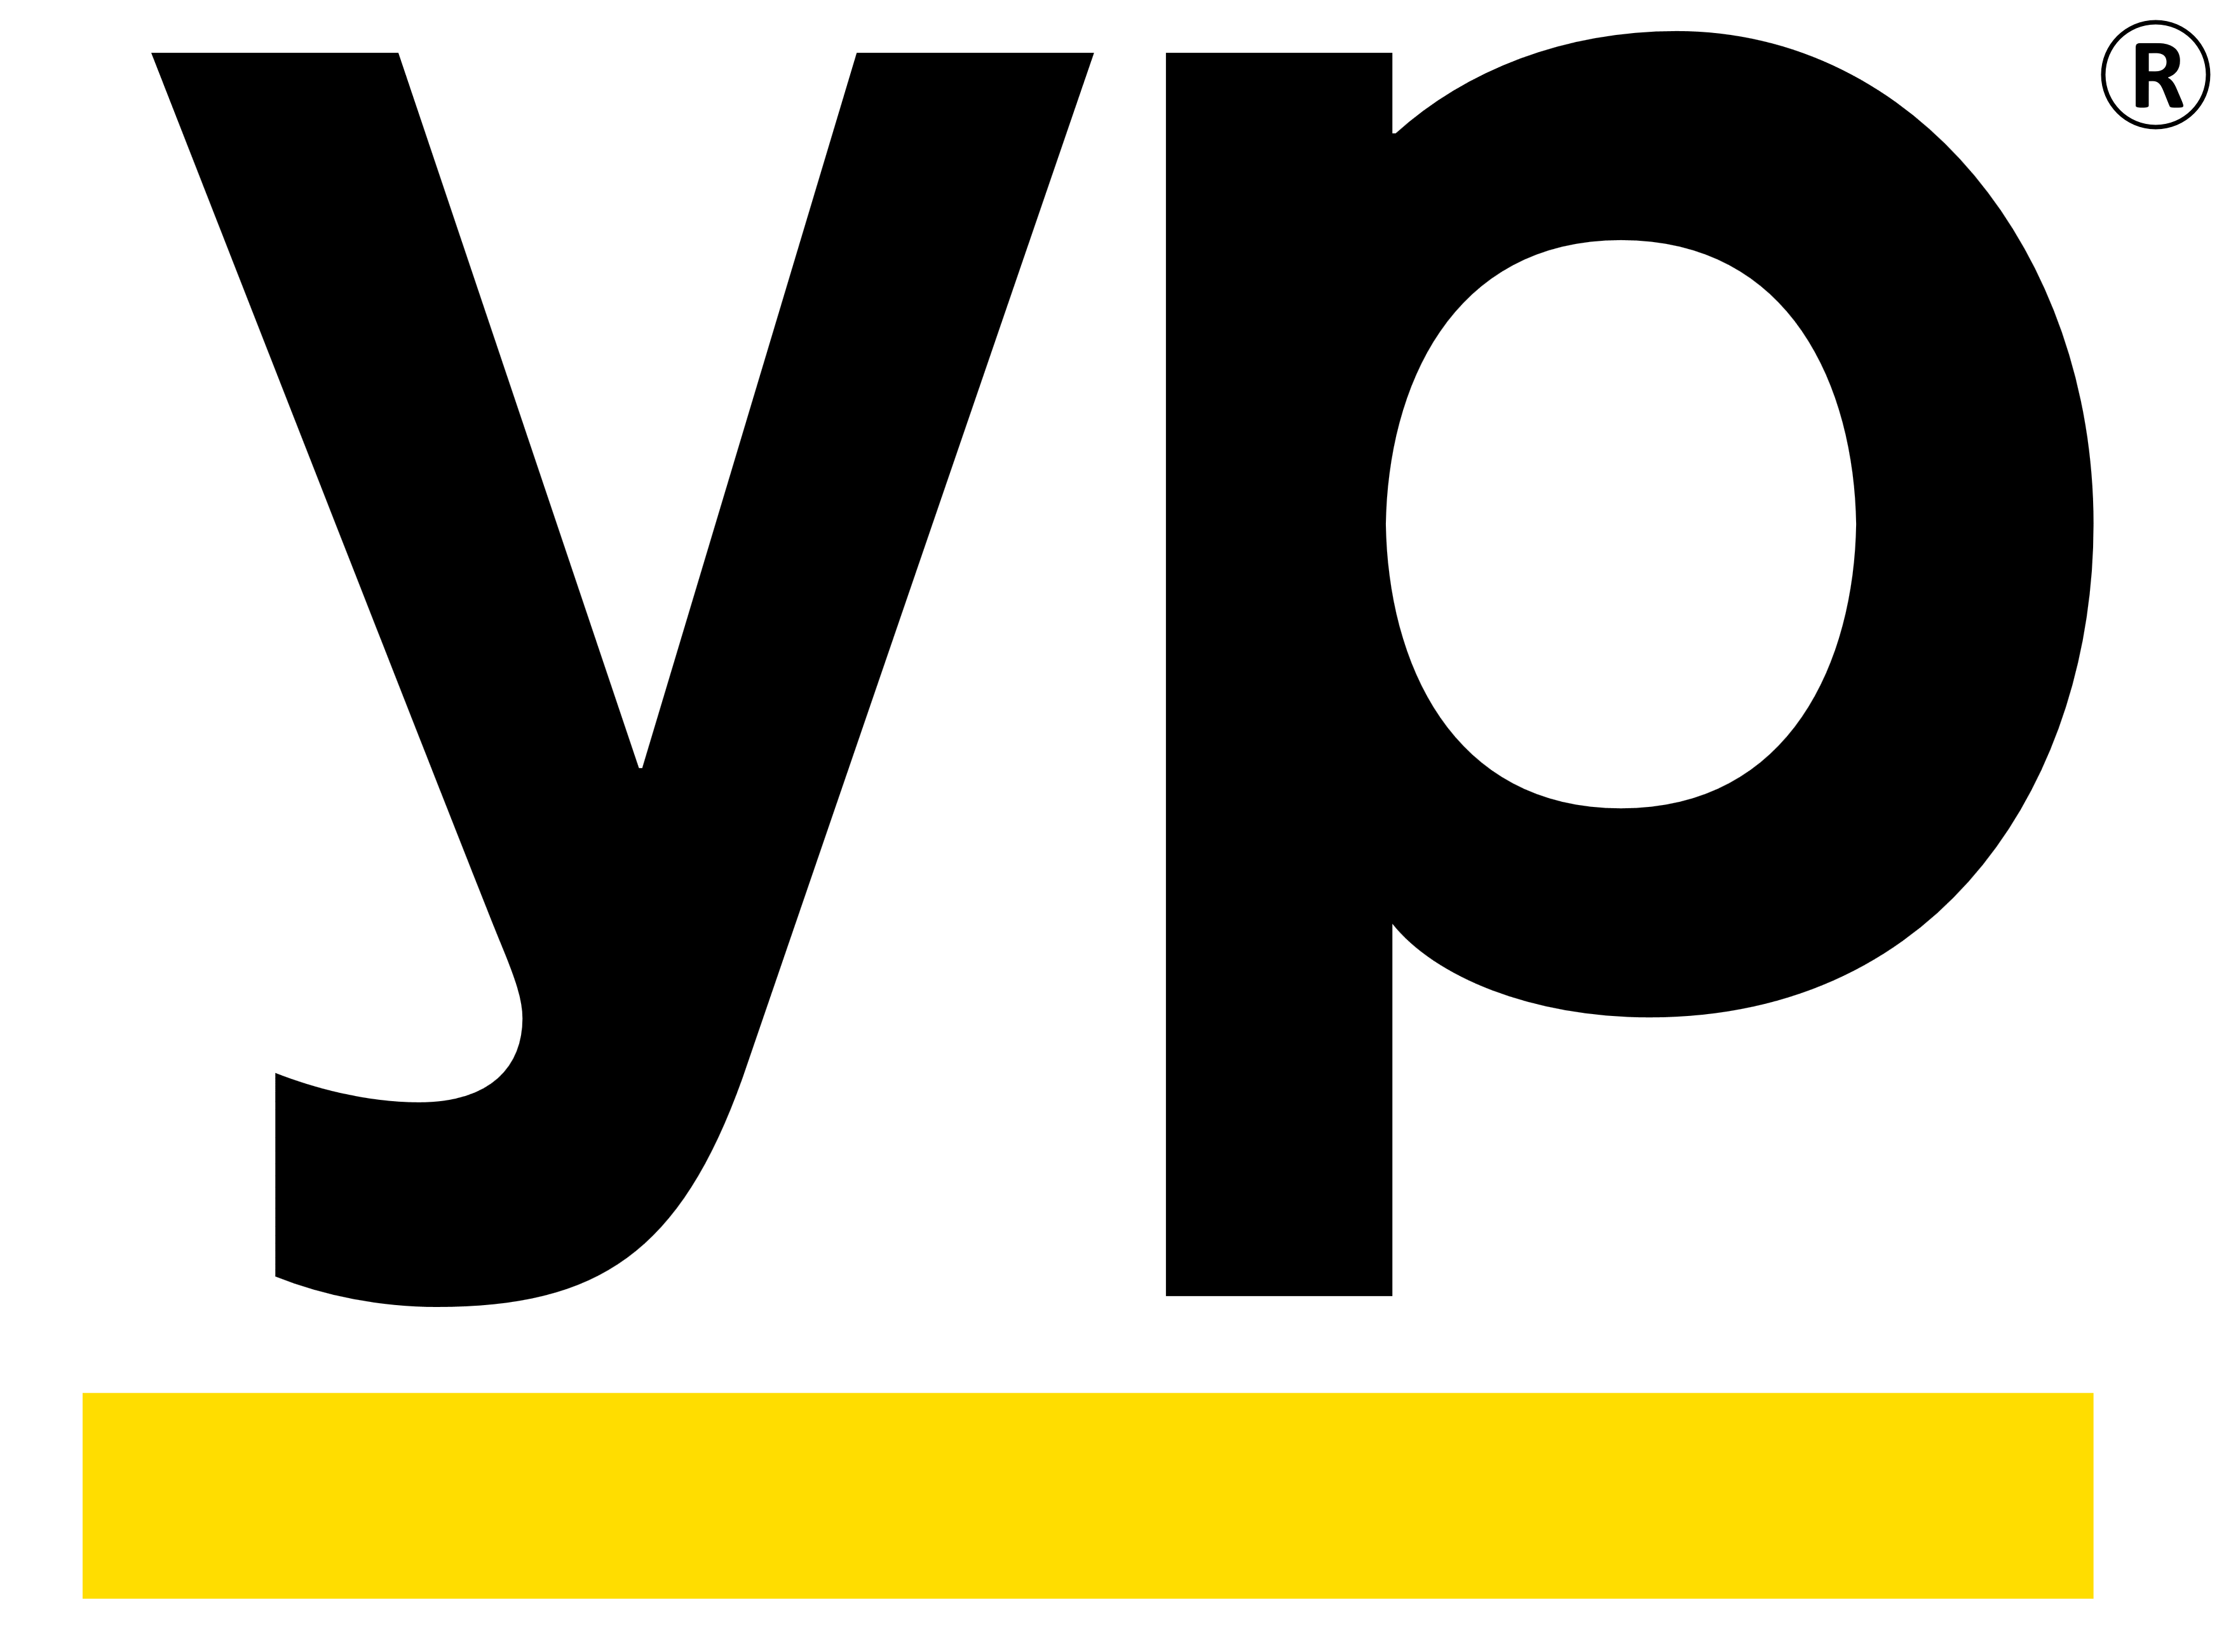 Png telephone directory yellow pages. Yellowpages com yp holdings